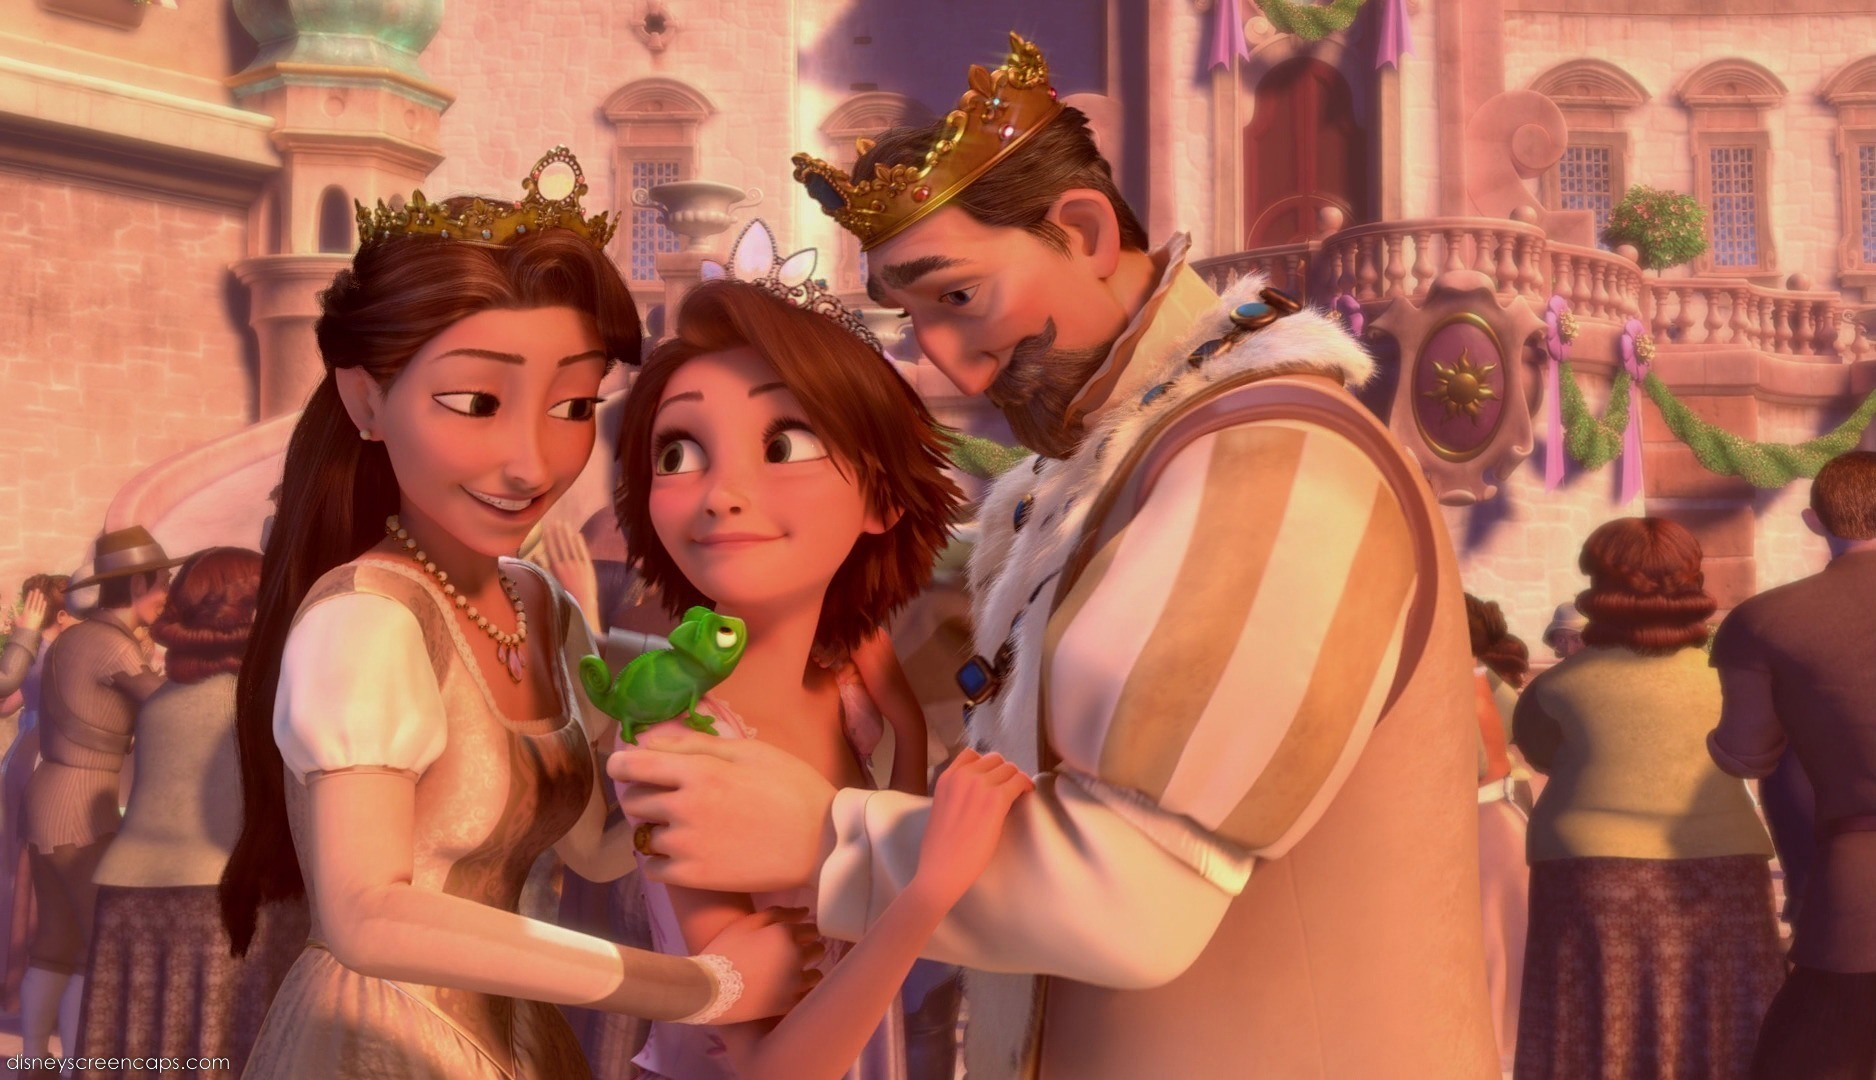 Disney Princess What Do You Expect From The Short Film Tangled Ever After